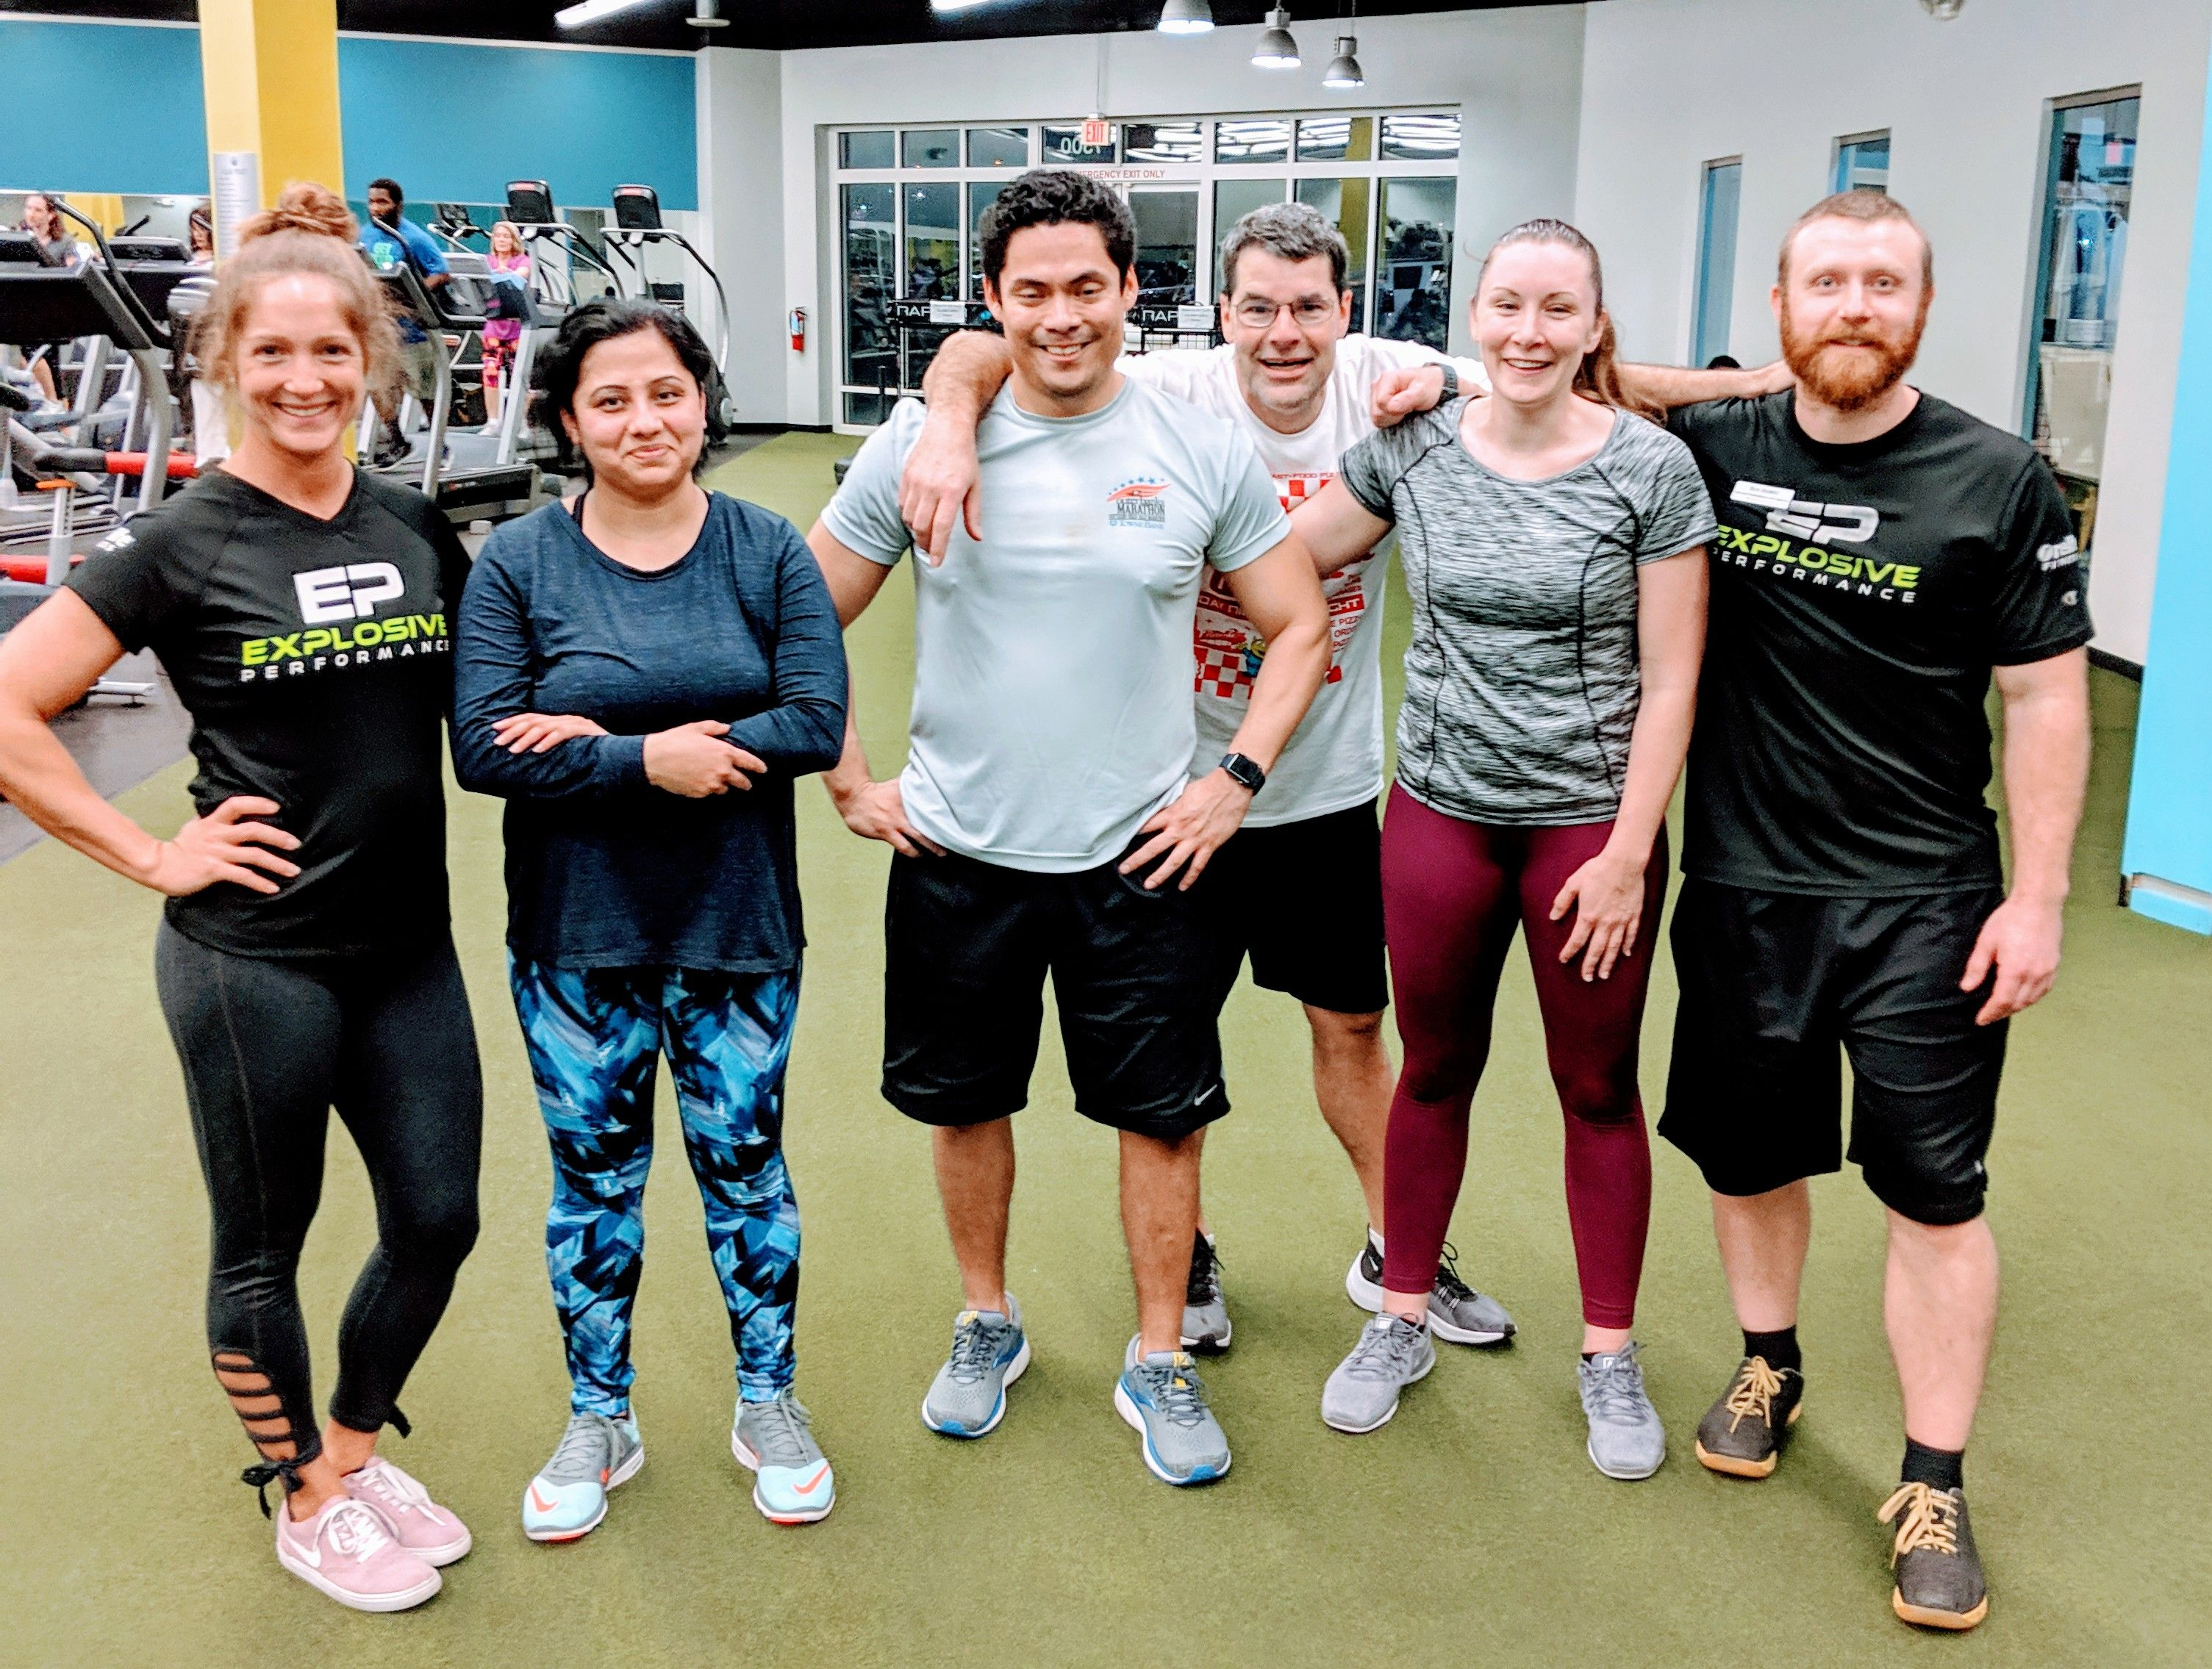 Onelife fitness express gainesville gears up for rypt